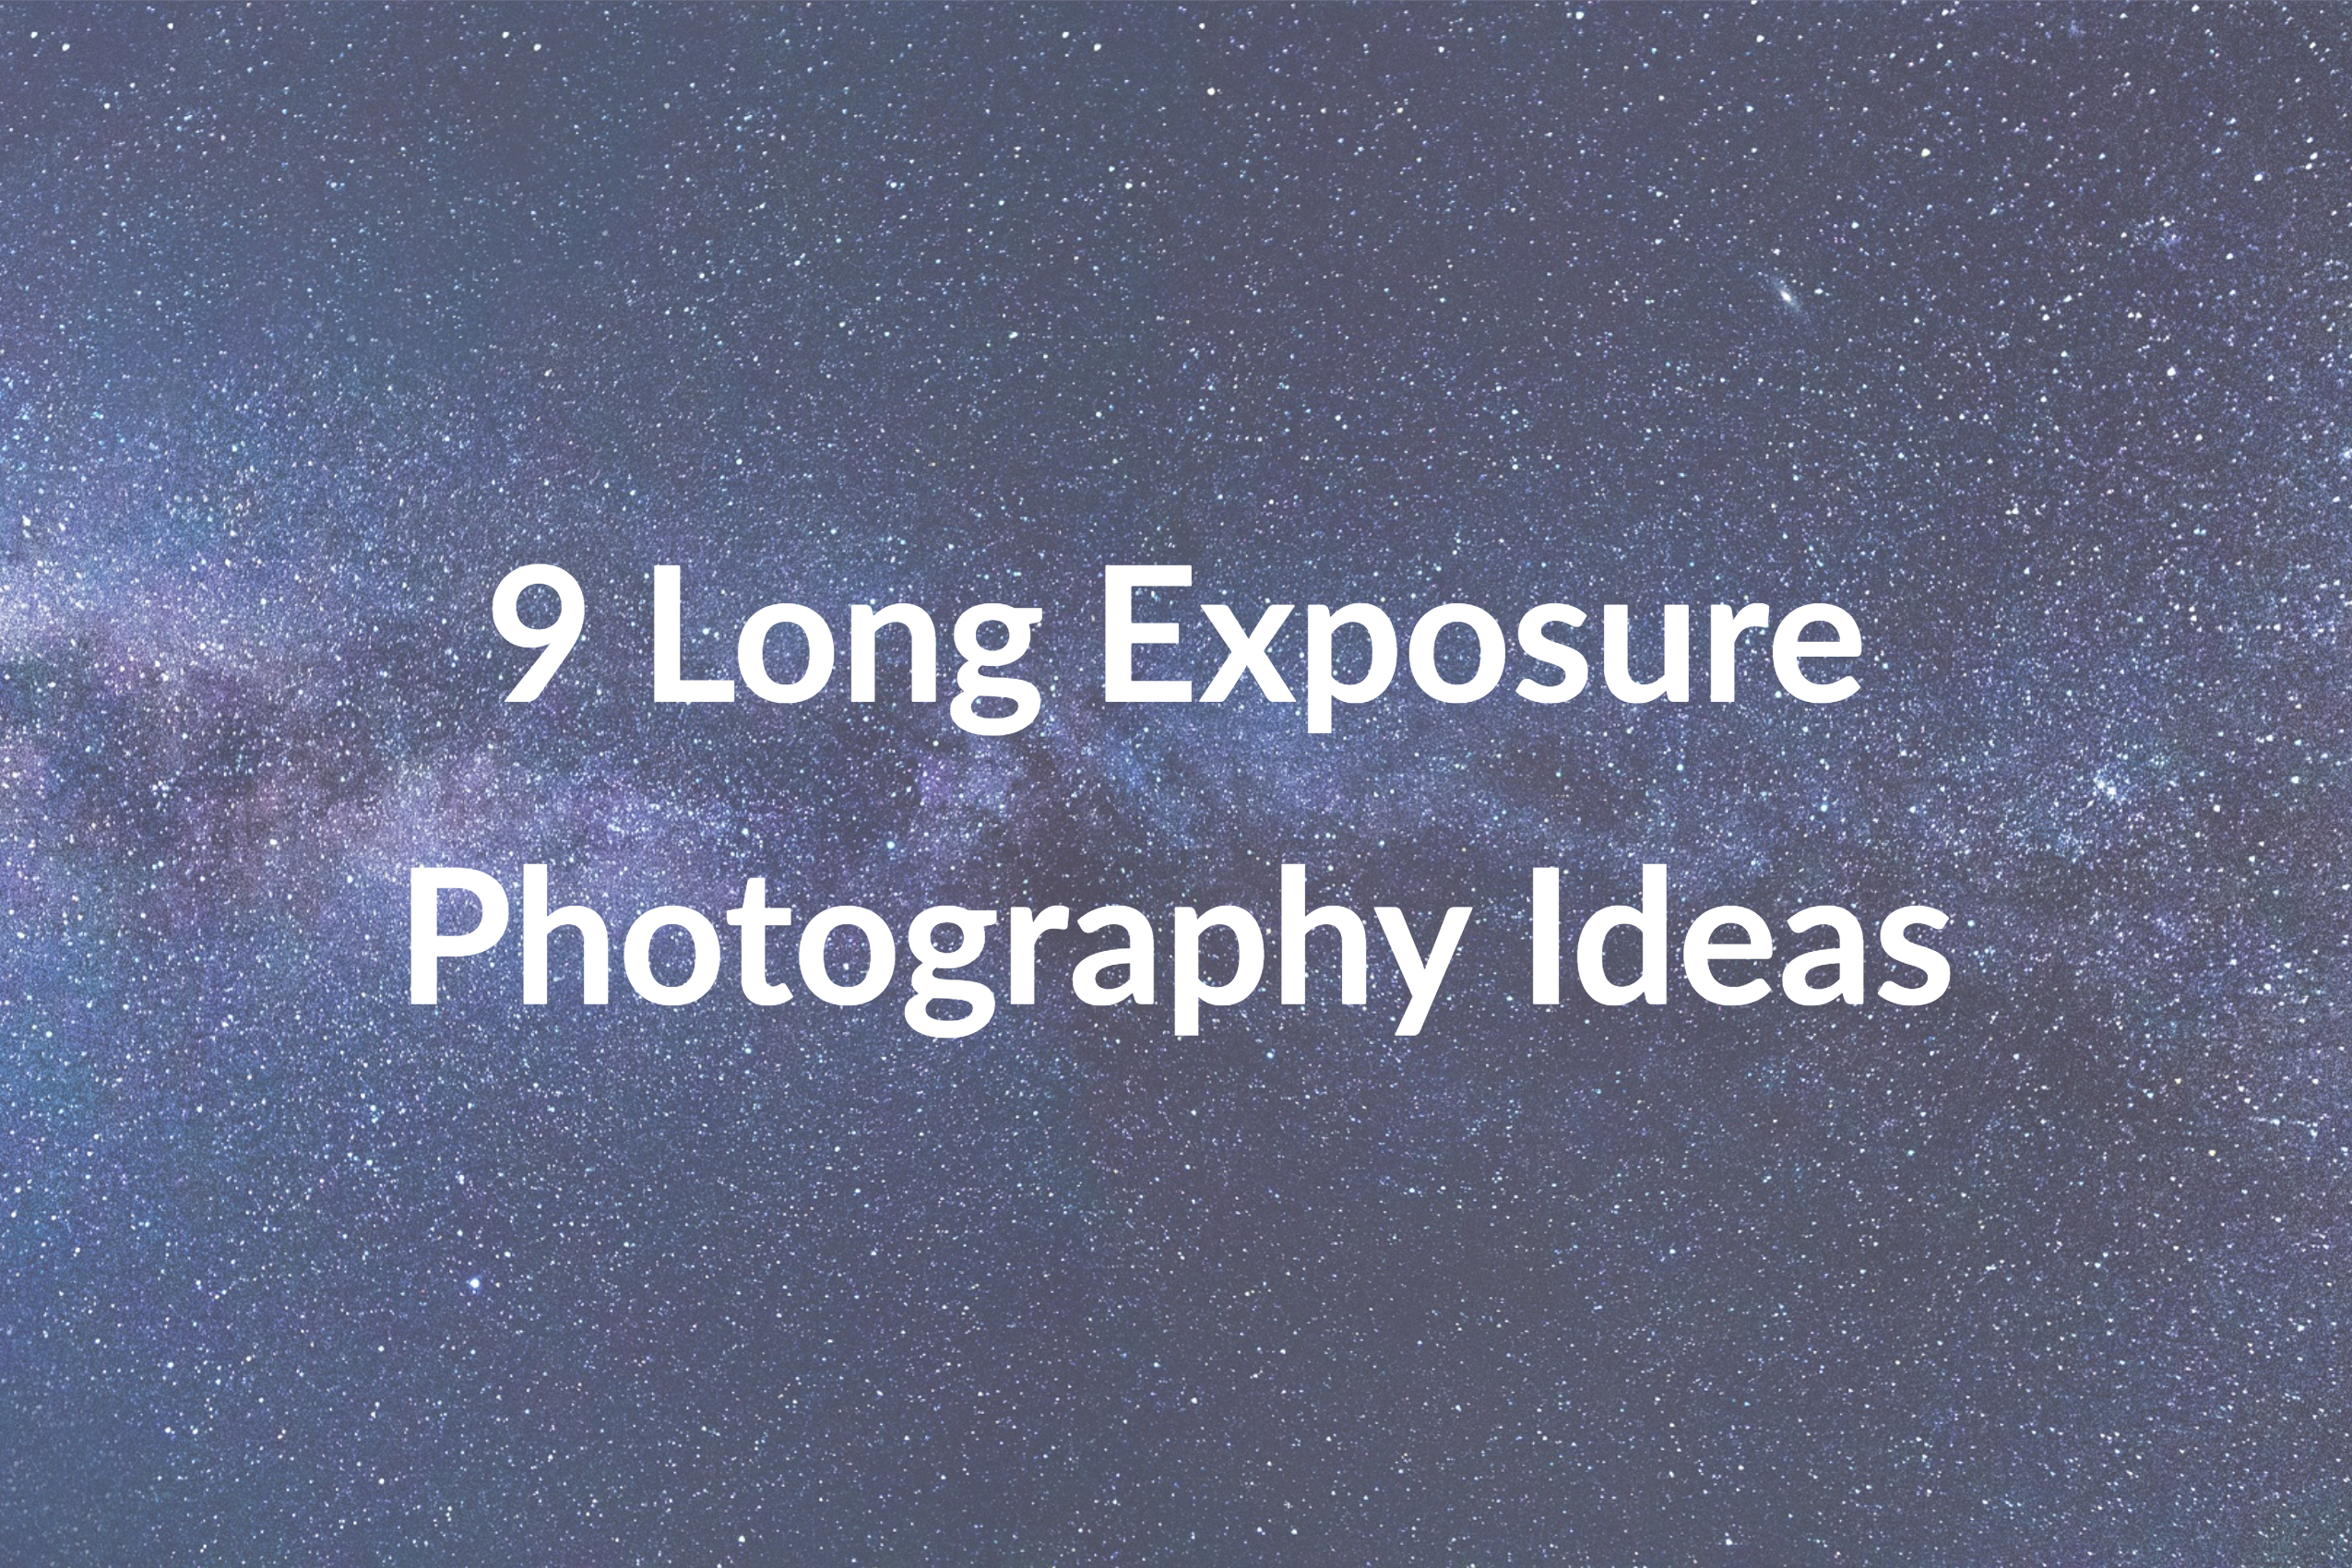 9 Long Exposure Photography Ideas